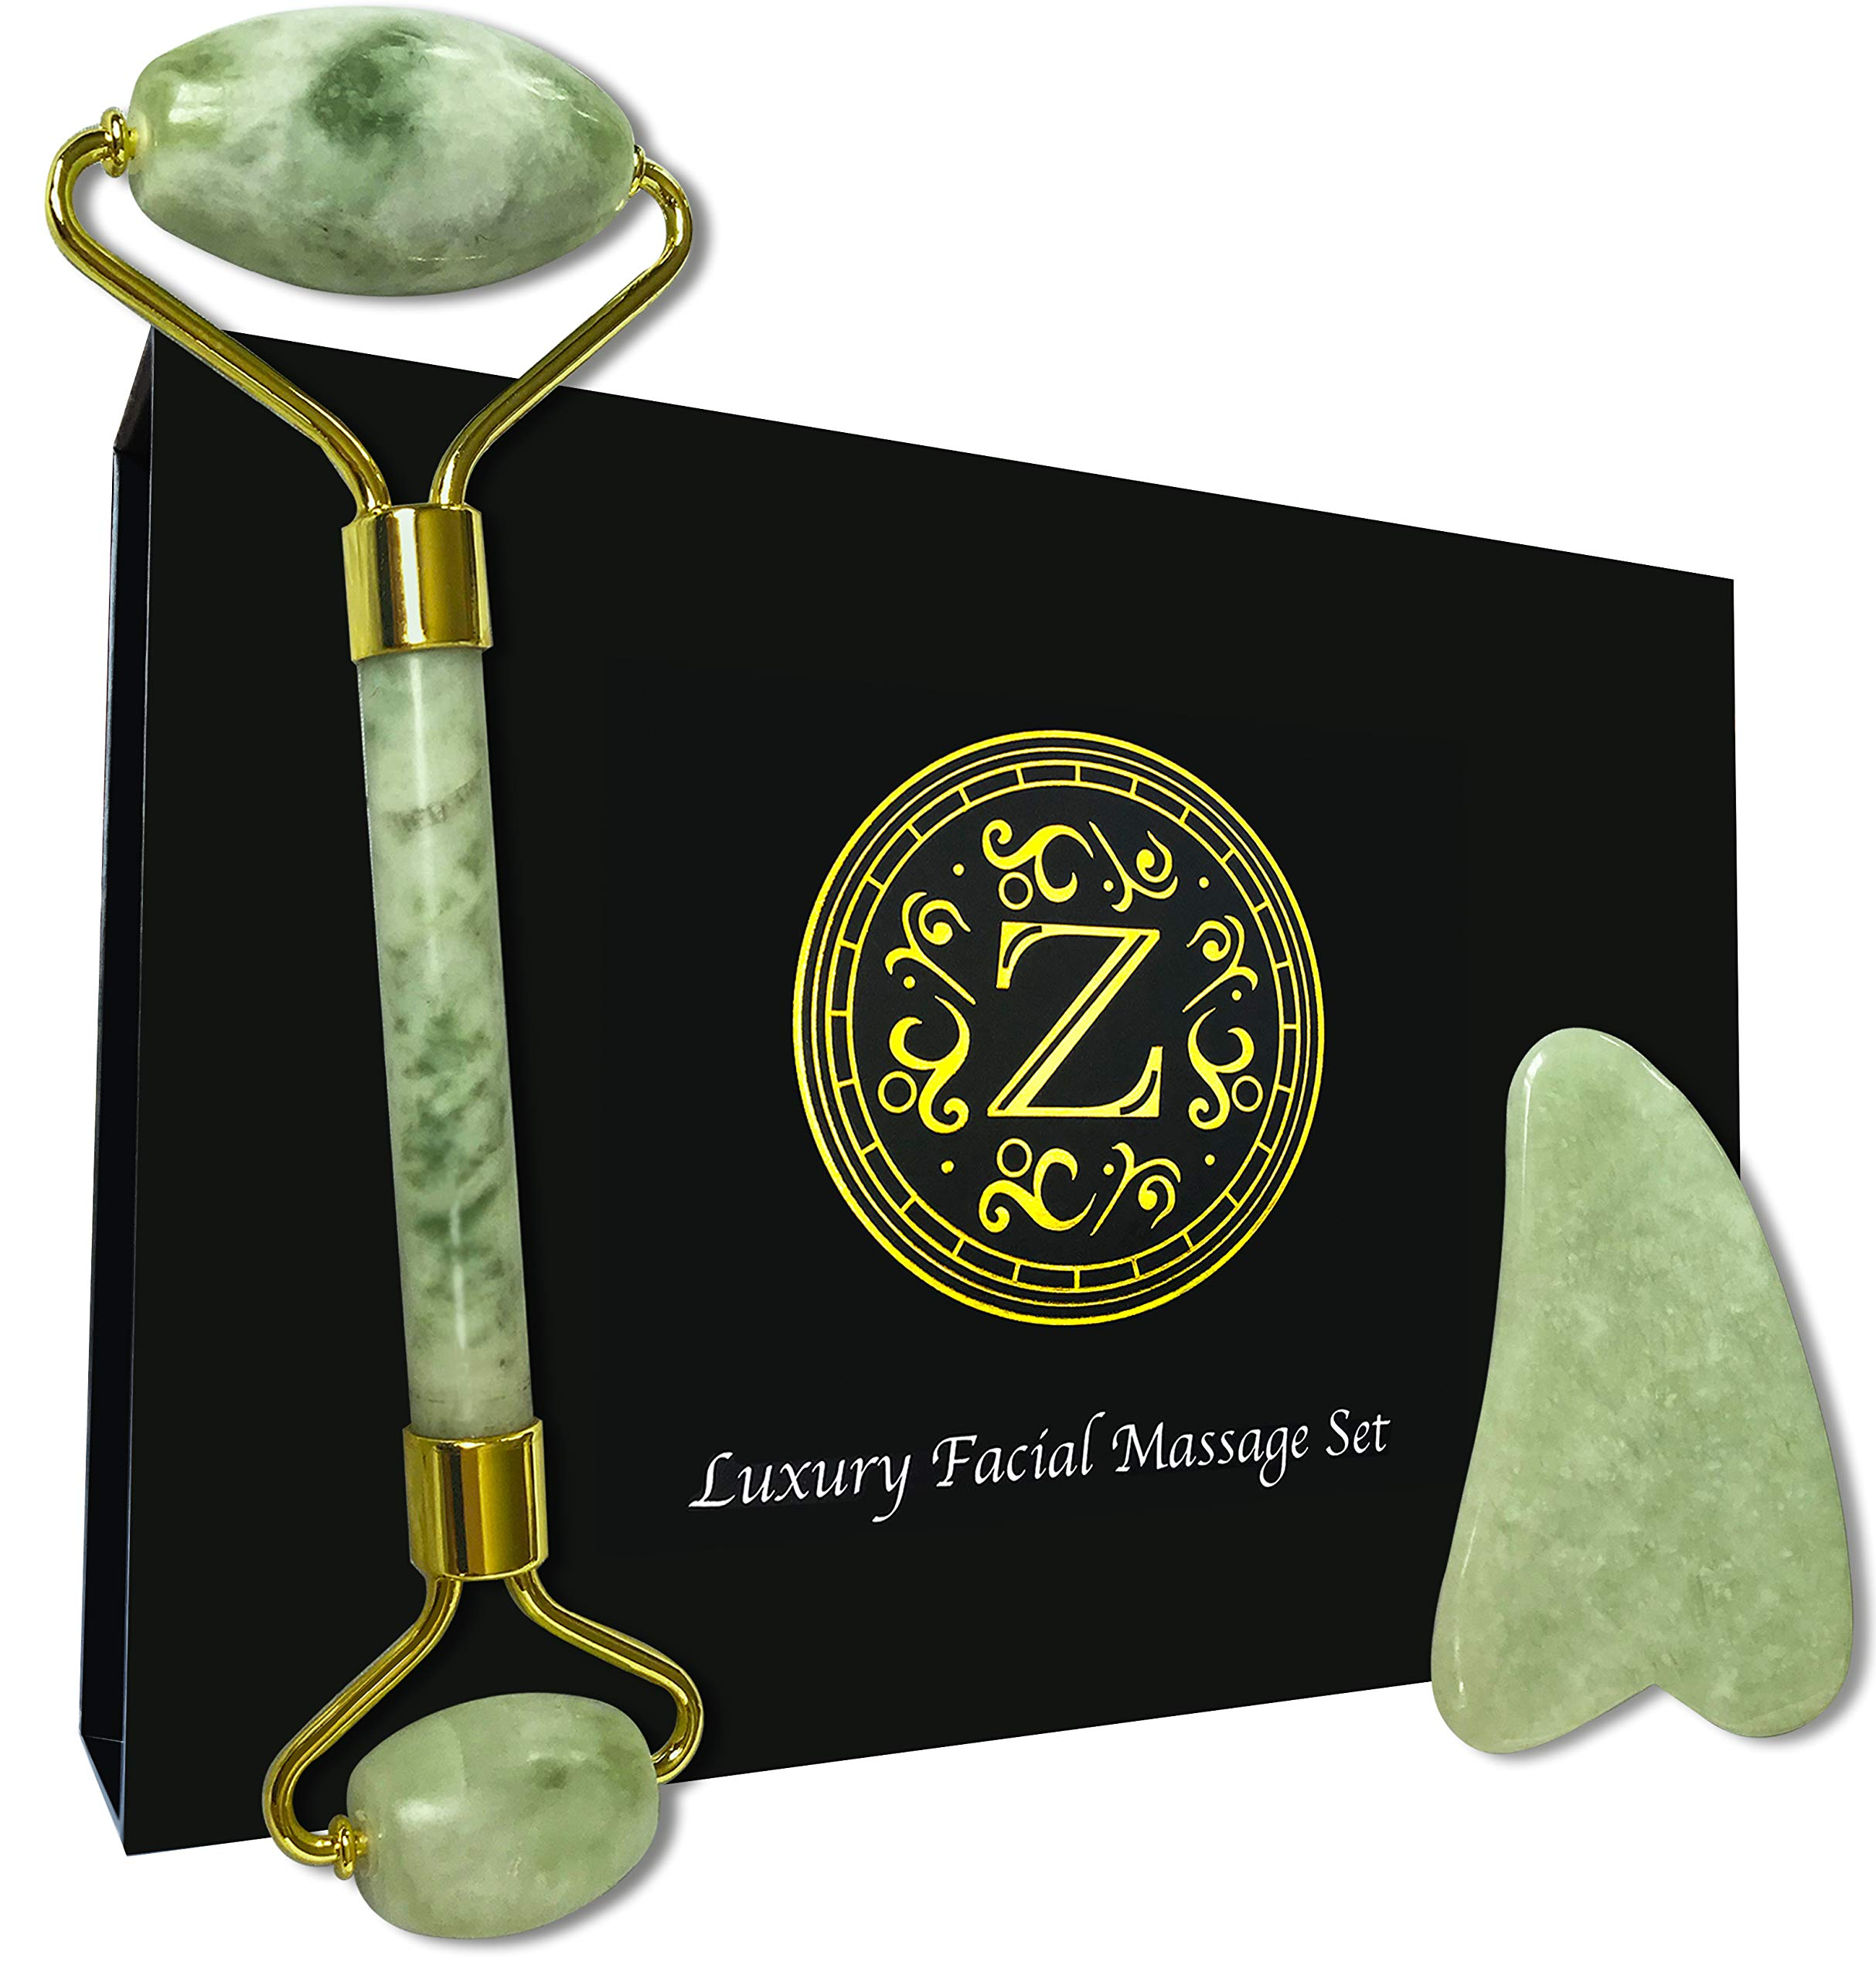 Jade Roller and Gua Sha Set - Luxury Facial Massage Set by Zamlinco - 2 Genuine Jade Massager Skin Care Tools for Face, Eyes and Neck - Achieve Firmer, Healthier, and more Radiant Looking Skin by Zamlinco